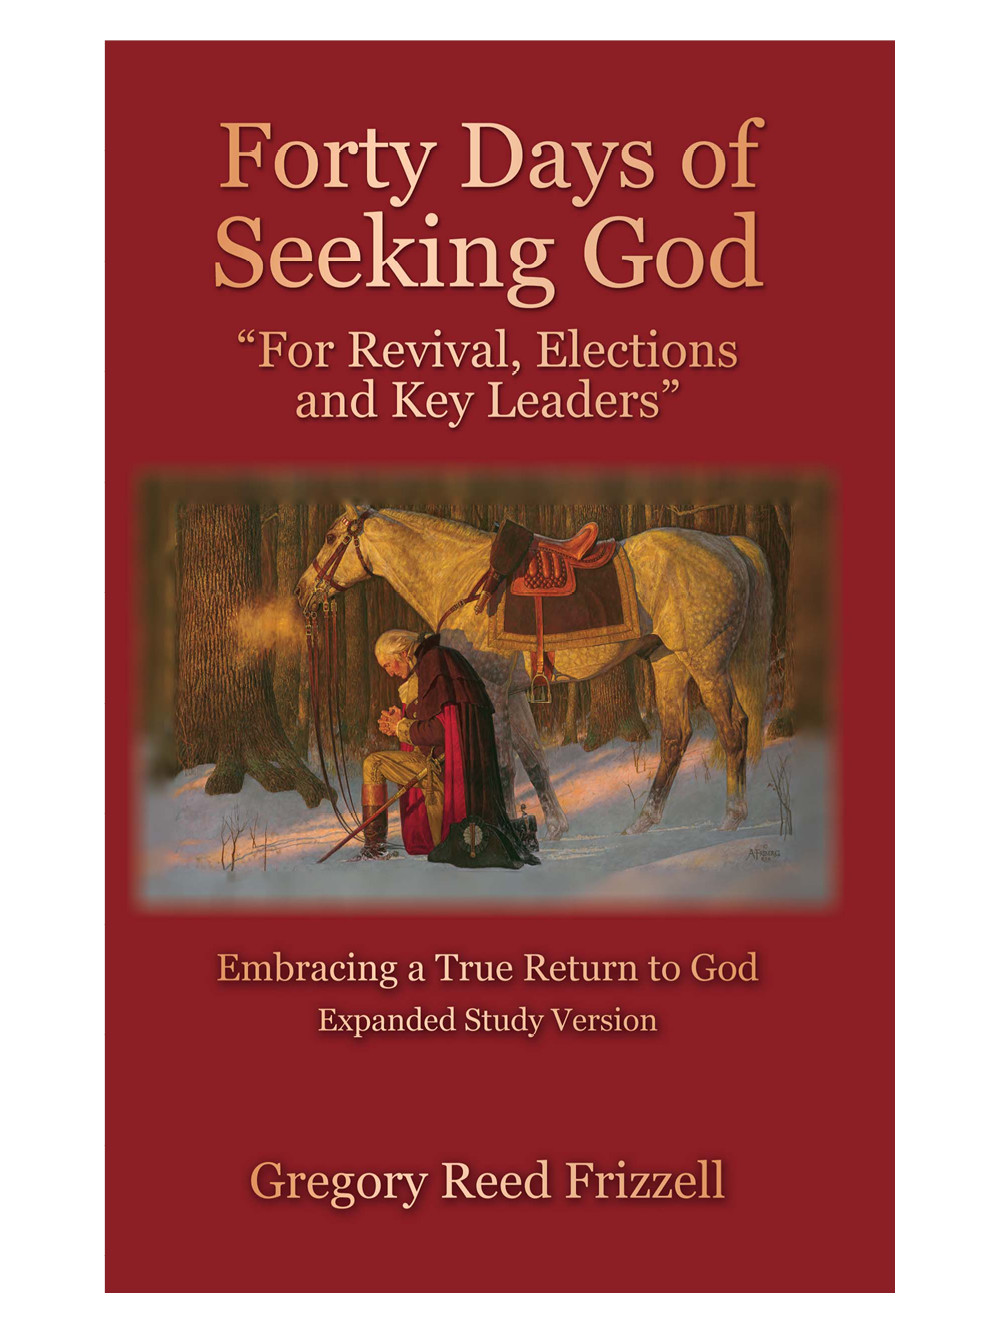 Forty Days of Seeking God – by Dr Greg Frizzell